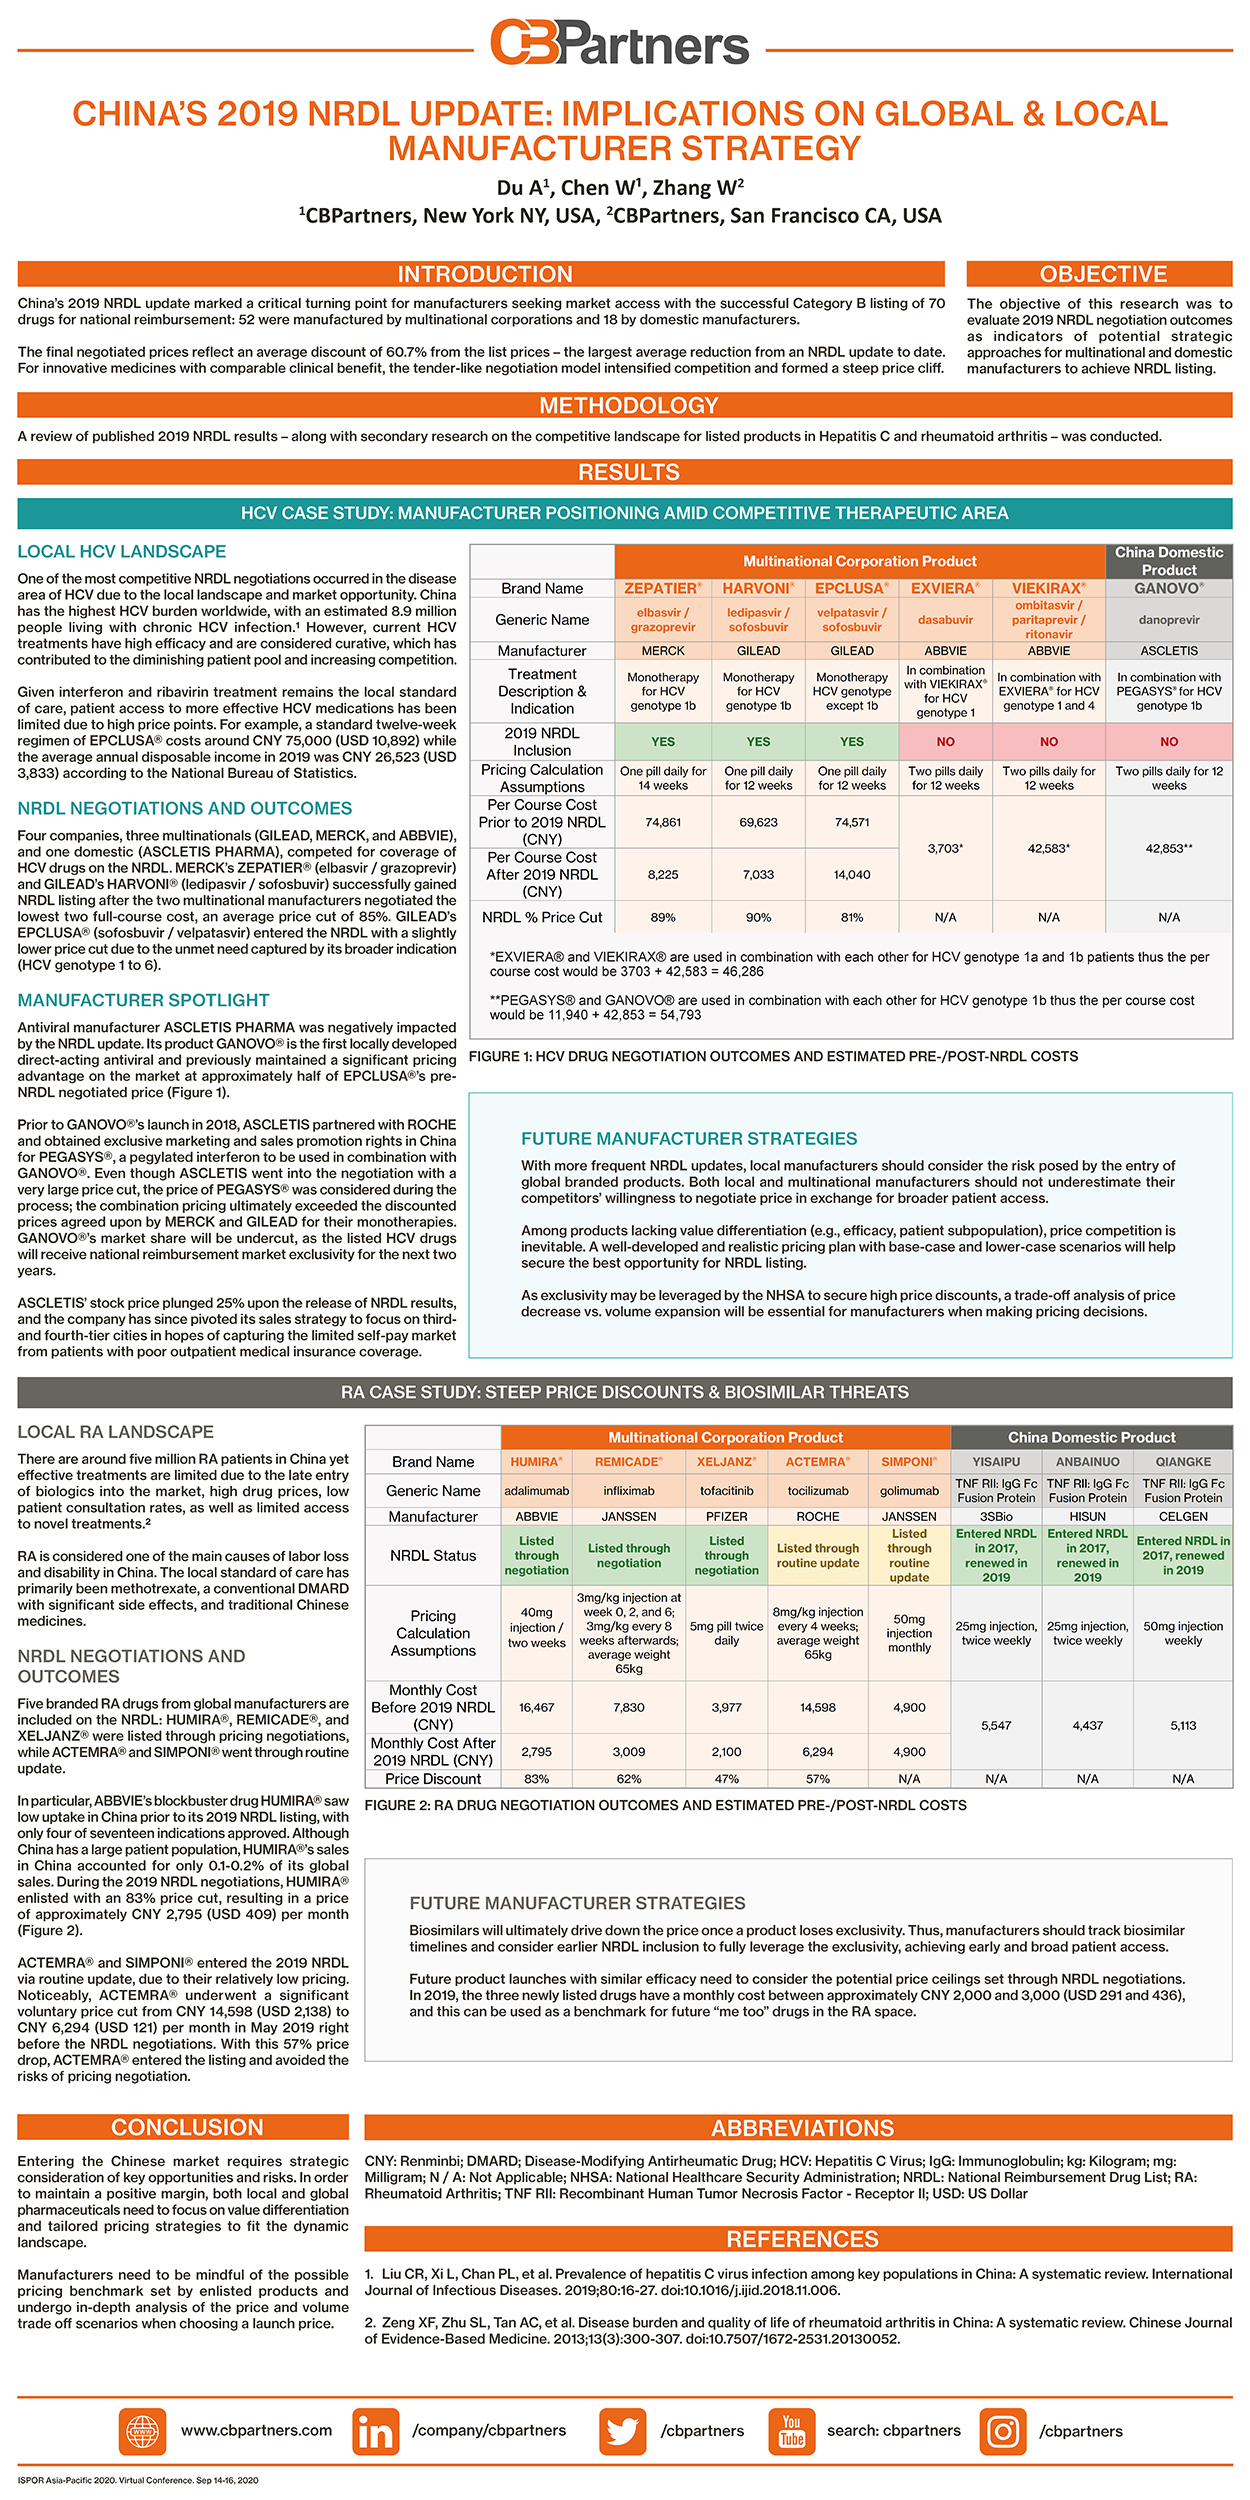 ISPOR Asia-Pacific 2020 research poster from CBPartners